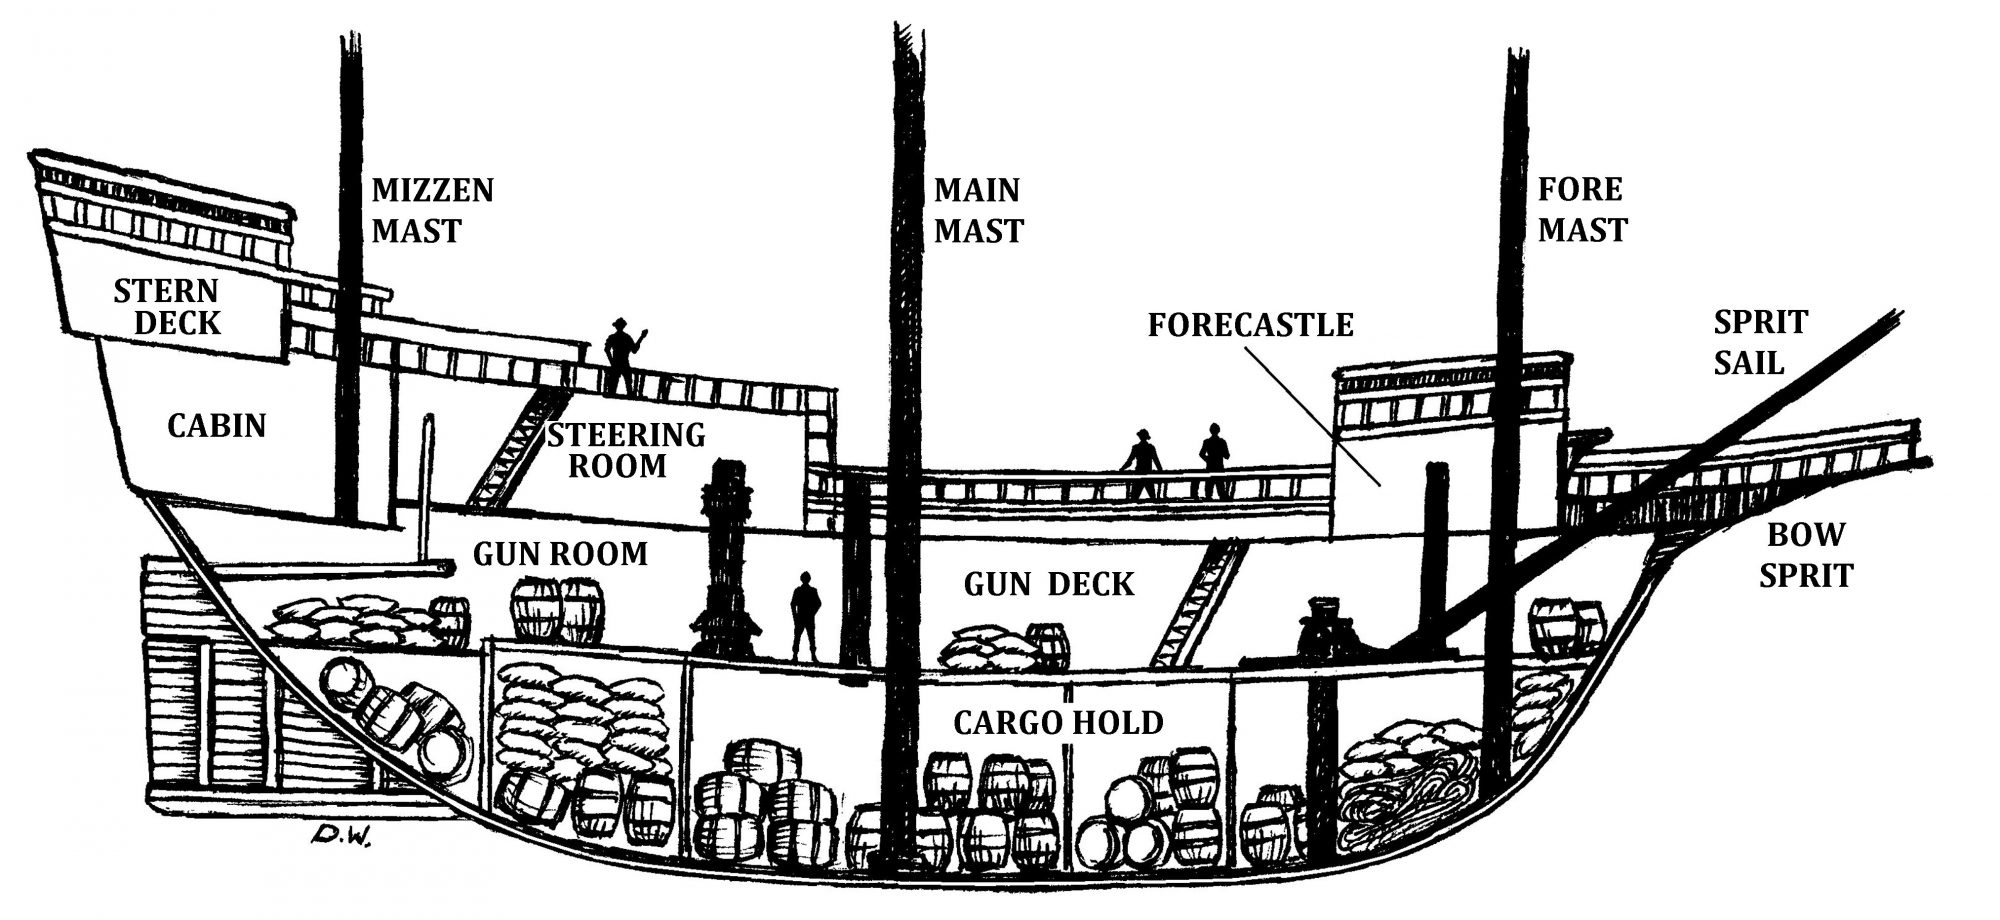 Cross Section of the Mayflower ship that transported the Pilgrims from England to America in 1620.